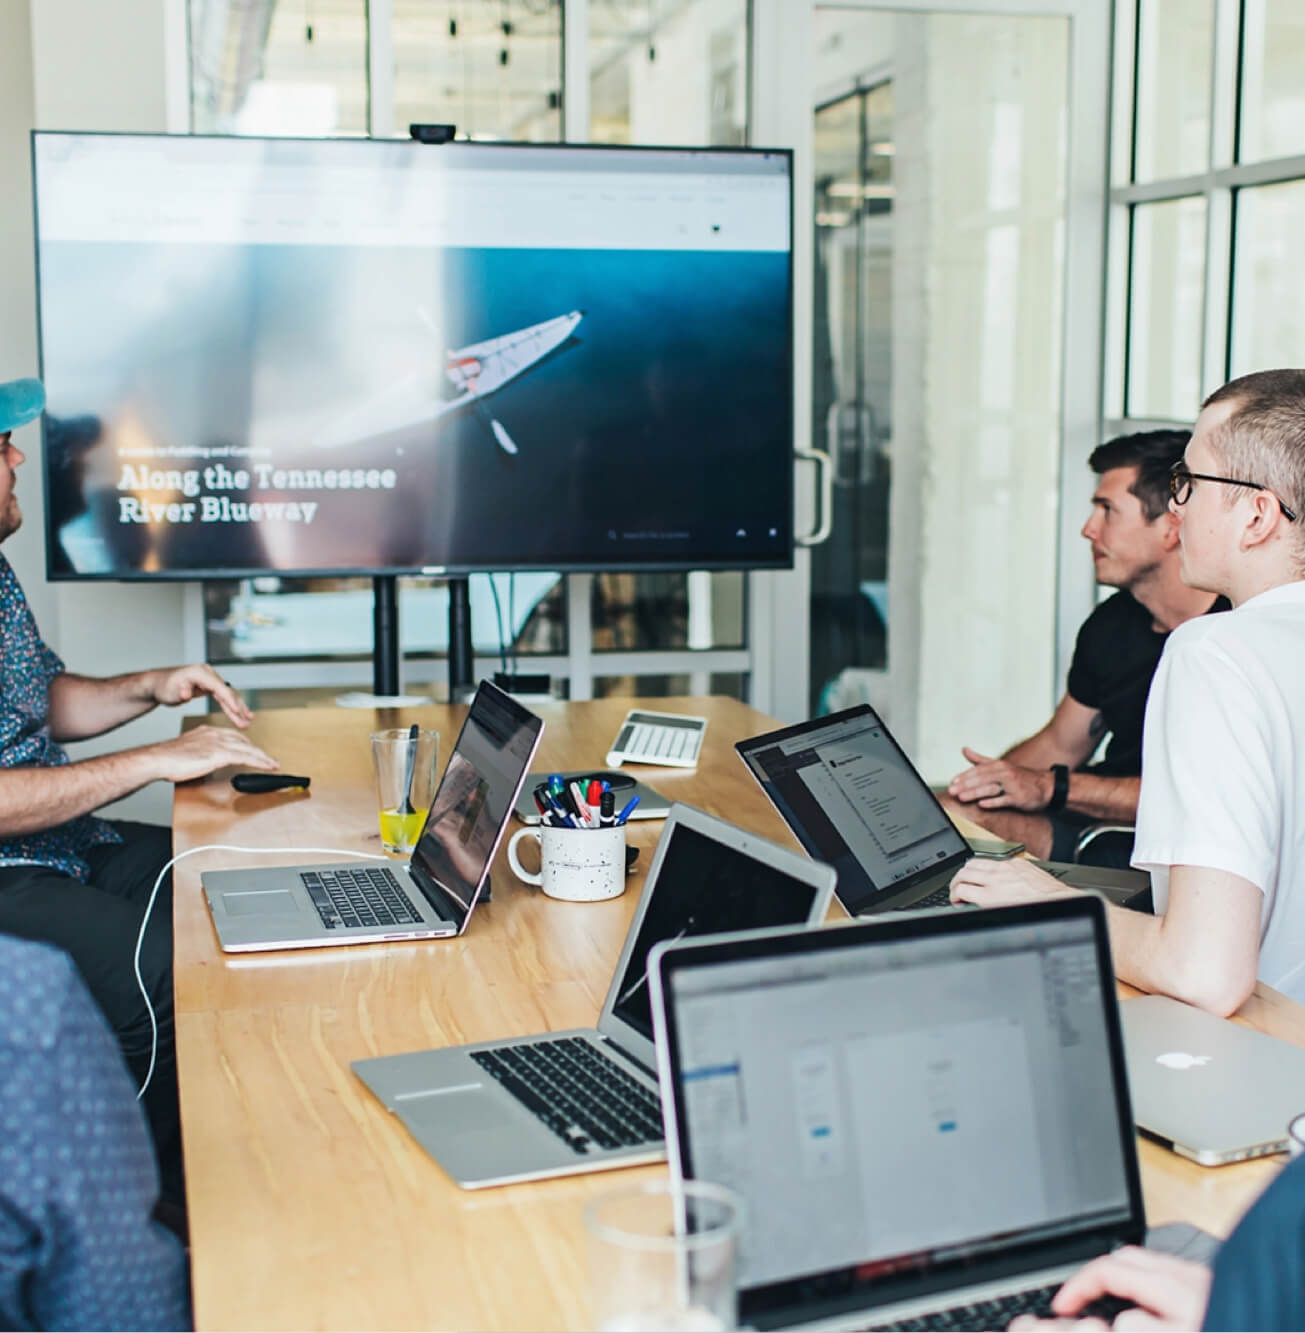 A group of creatives looking at a smart screen together